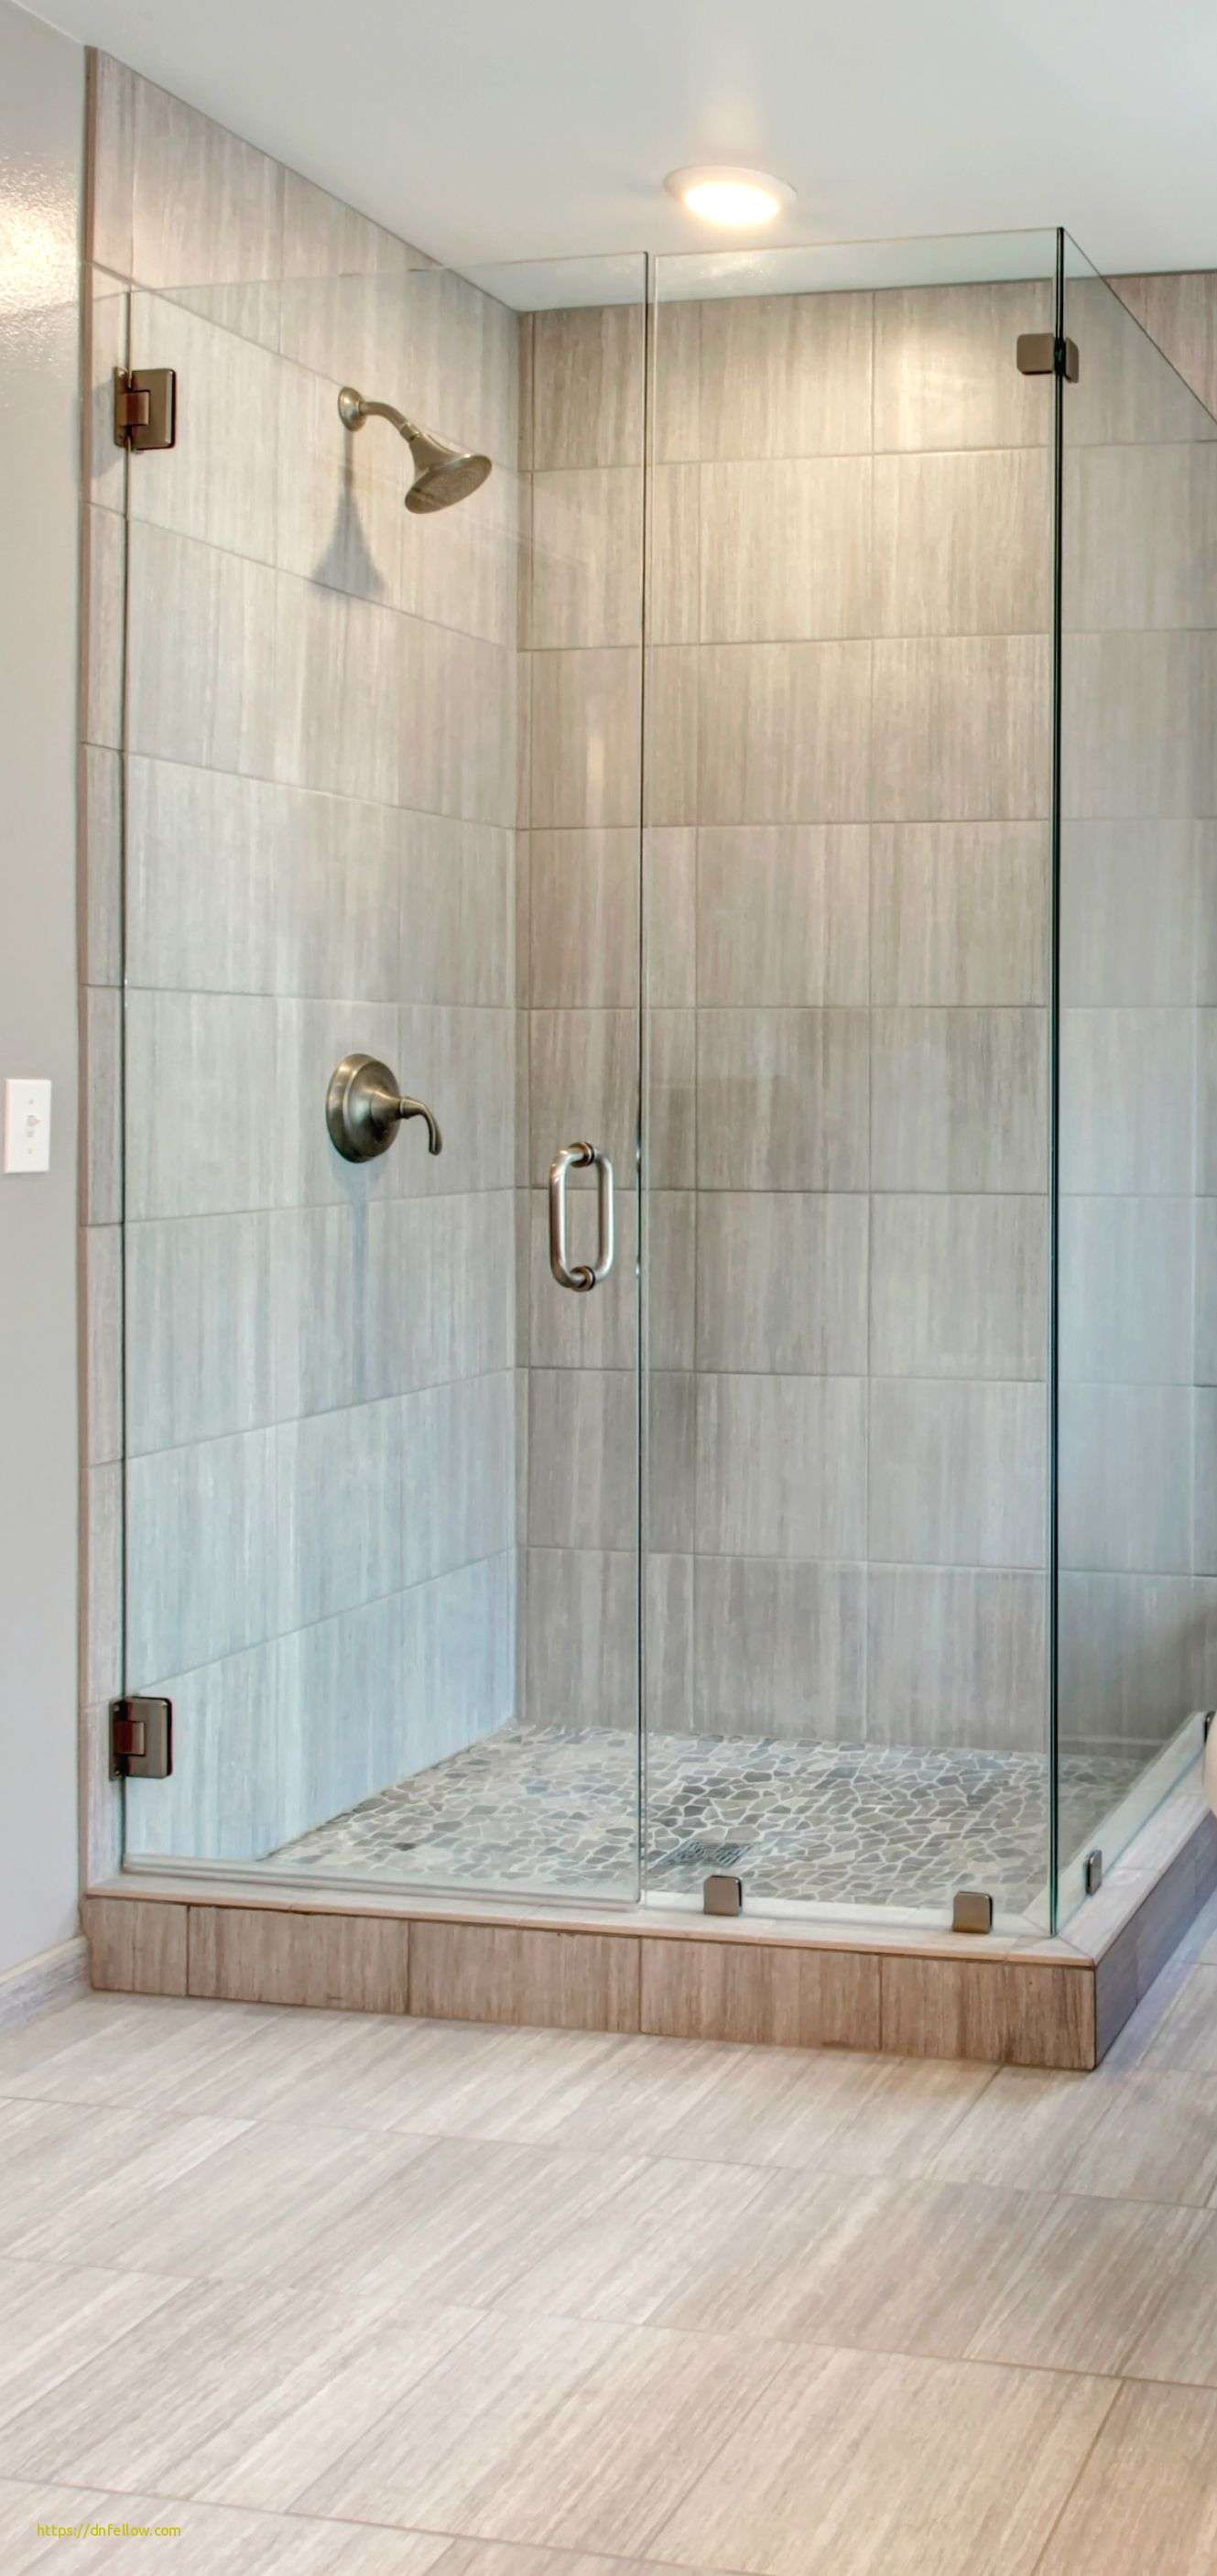 New Dimensions Of A Stand Up Shower - Home Design